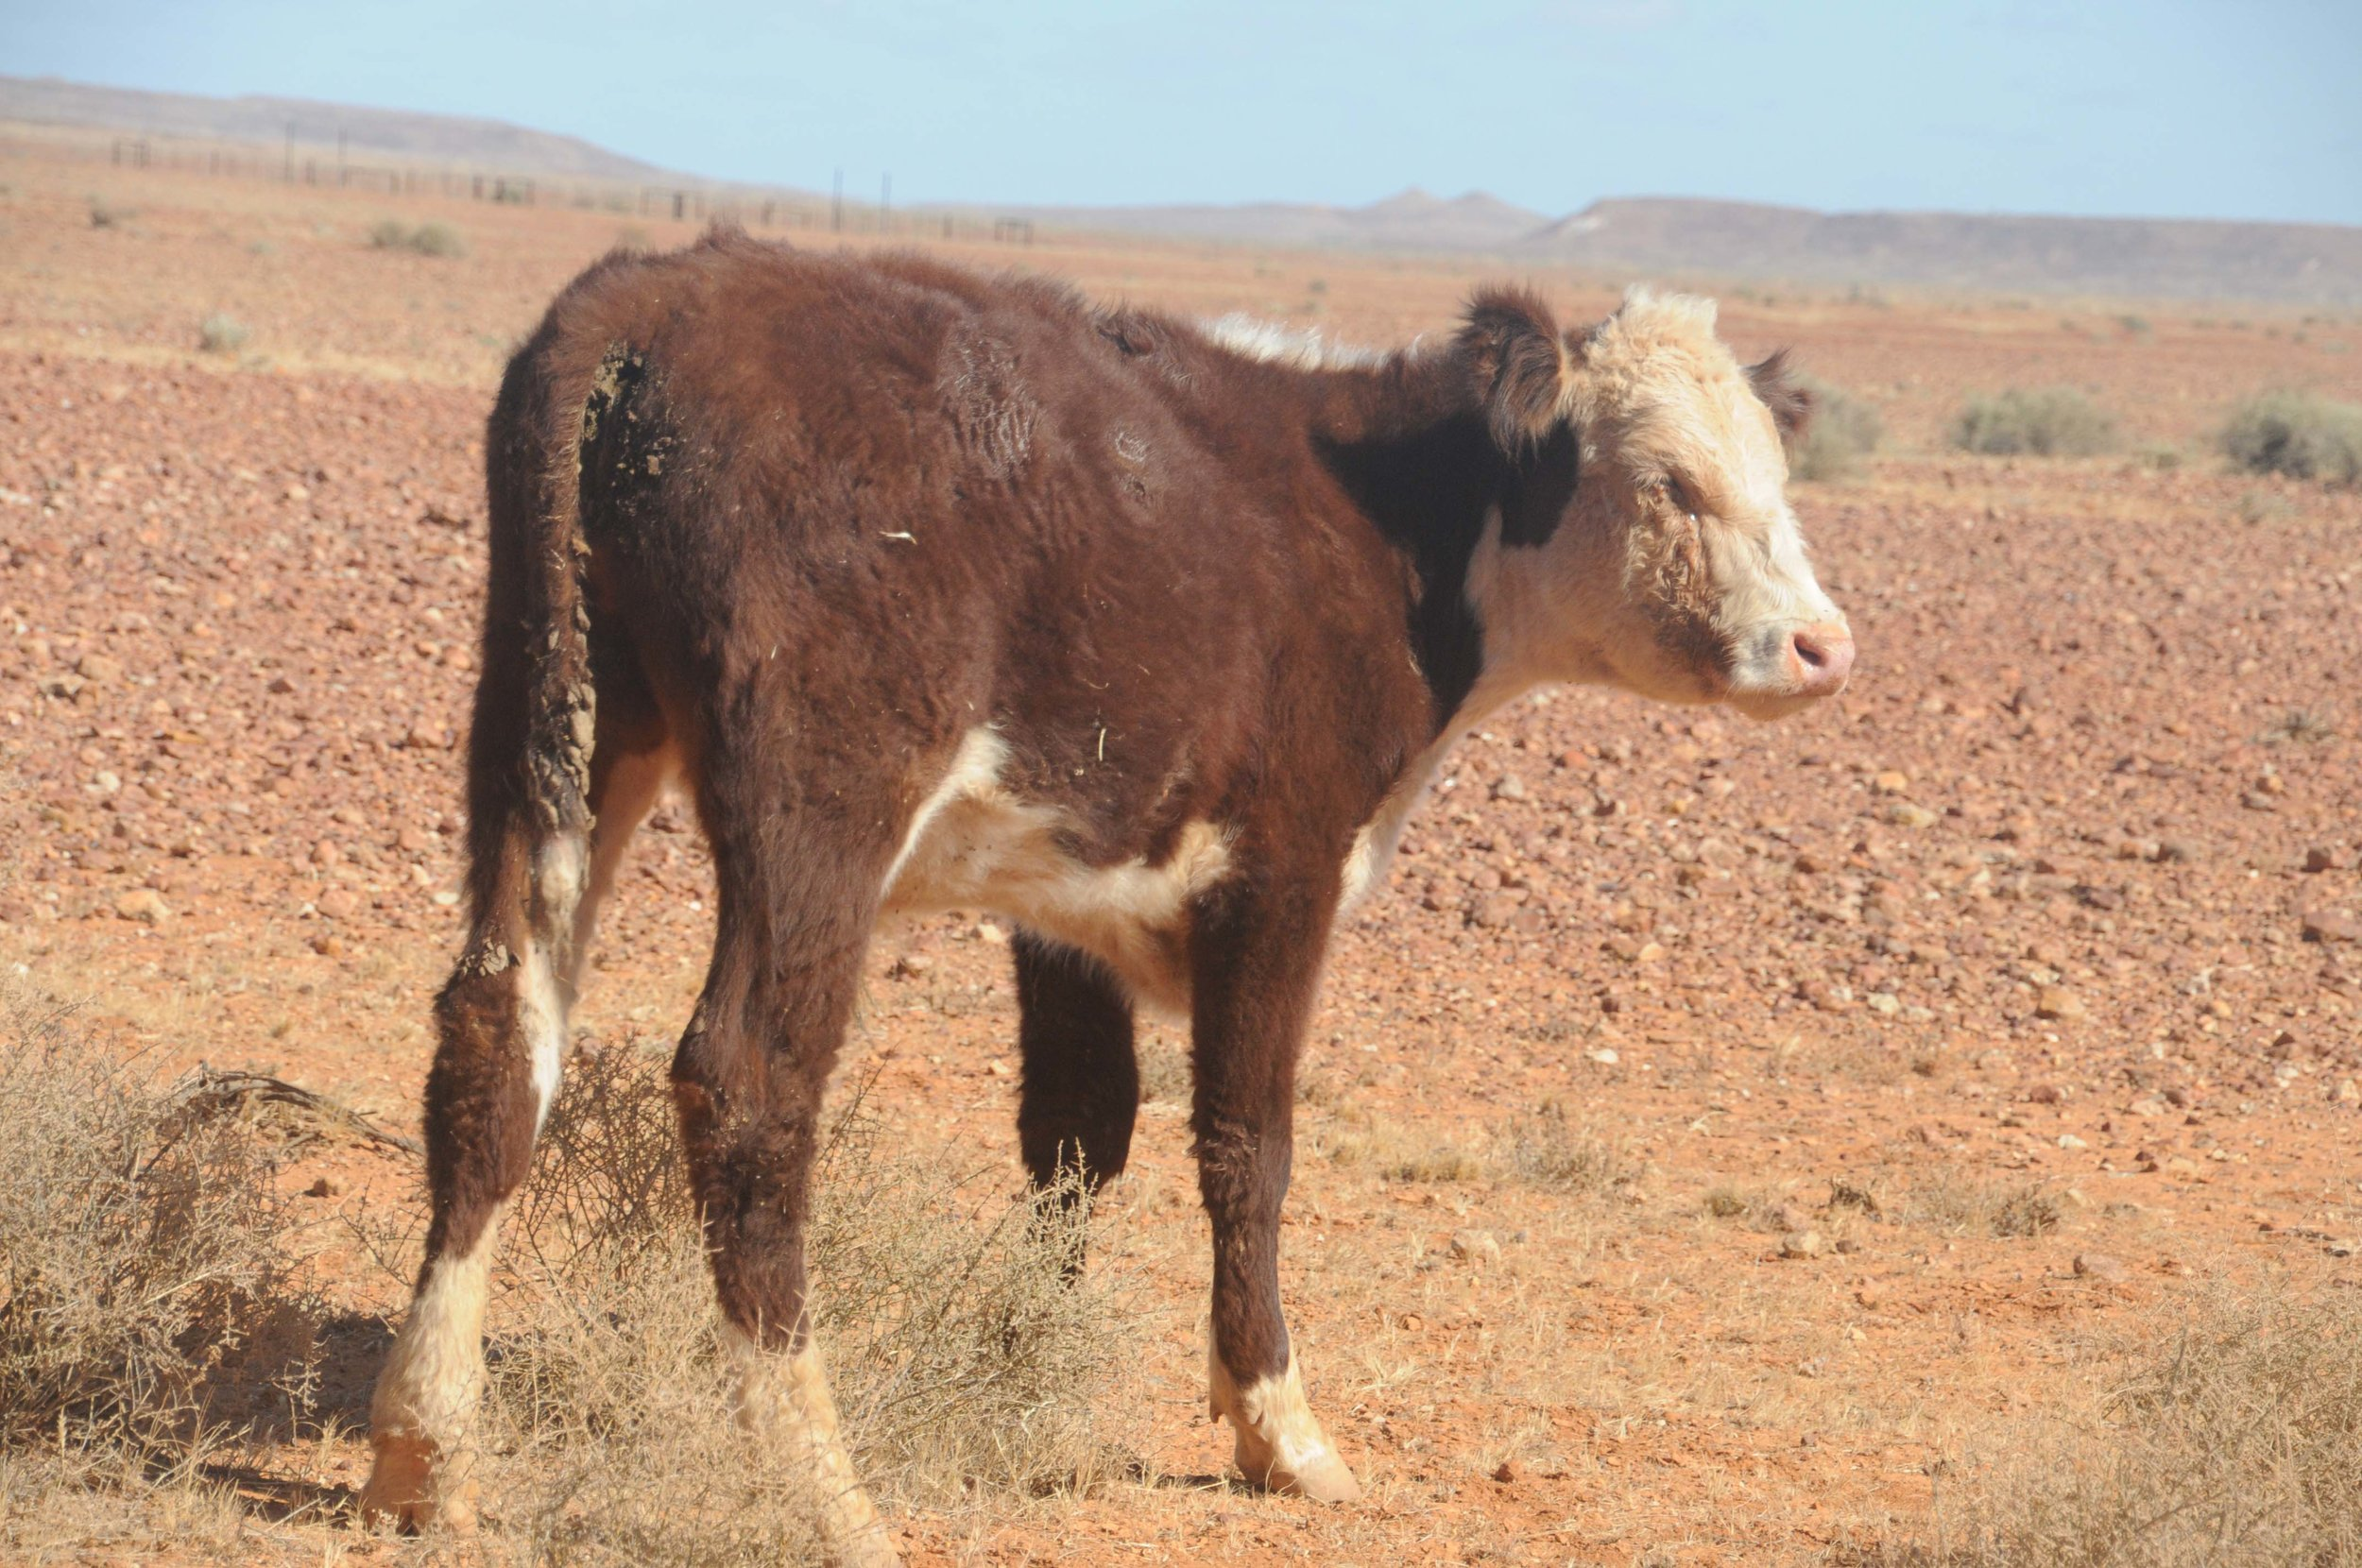 Far North S A. Not a happy looking half grown cow.    Raised on near barren land at 1 animal per   1 square kilometre.